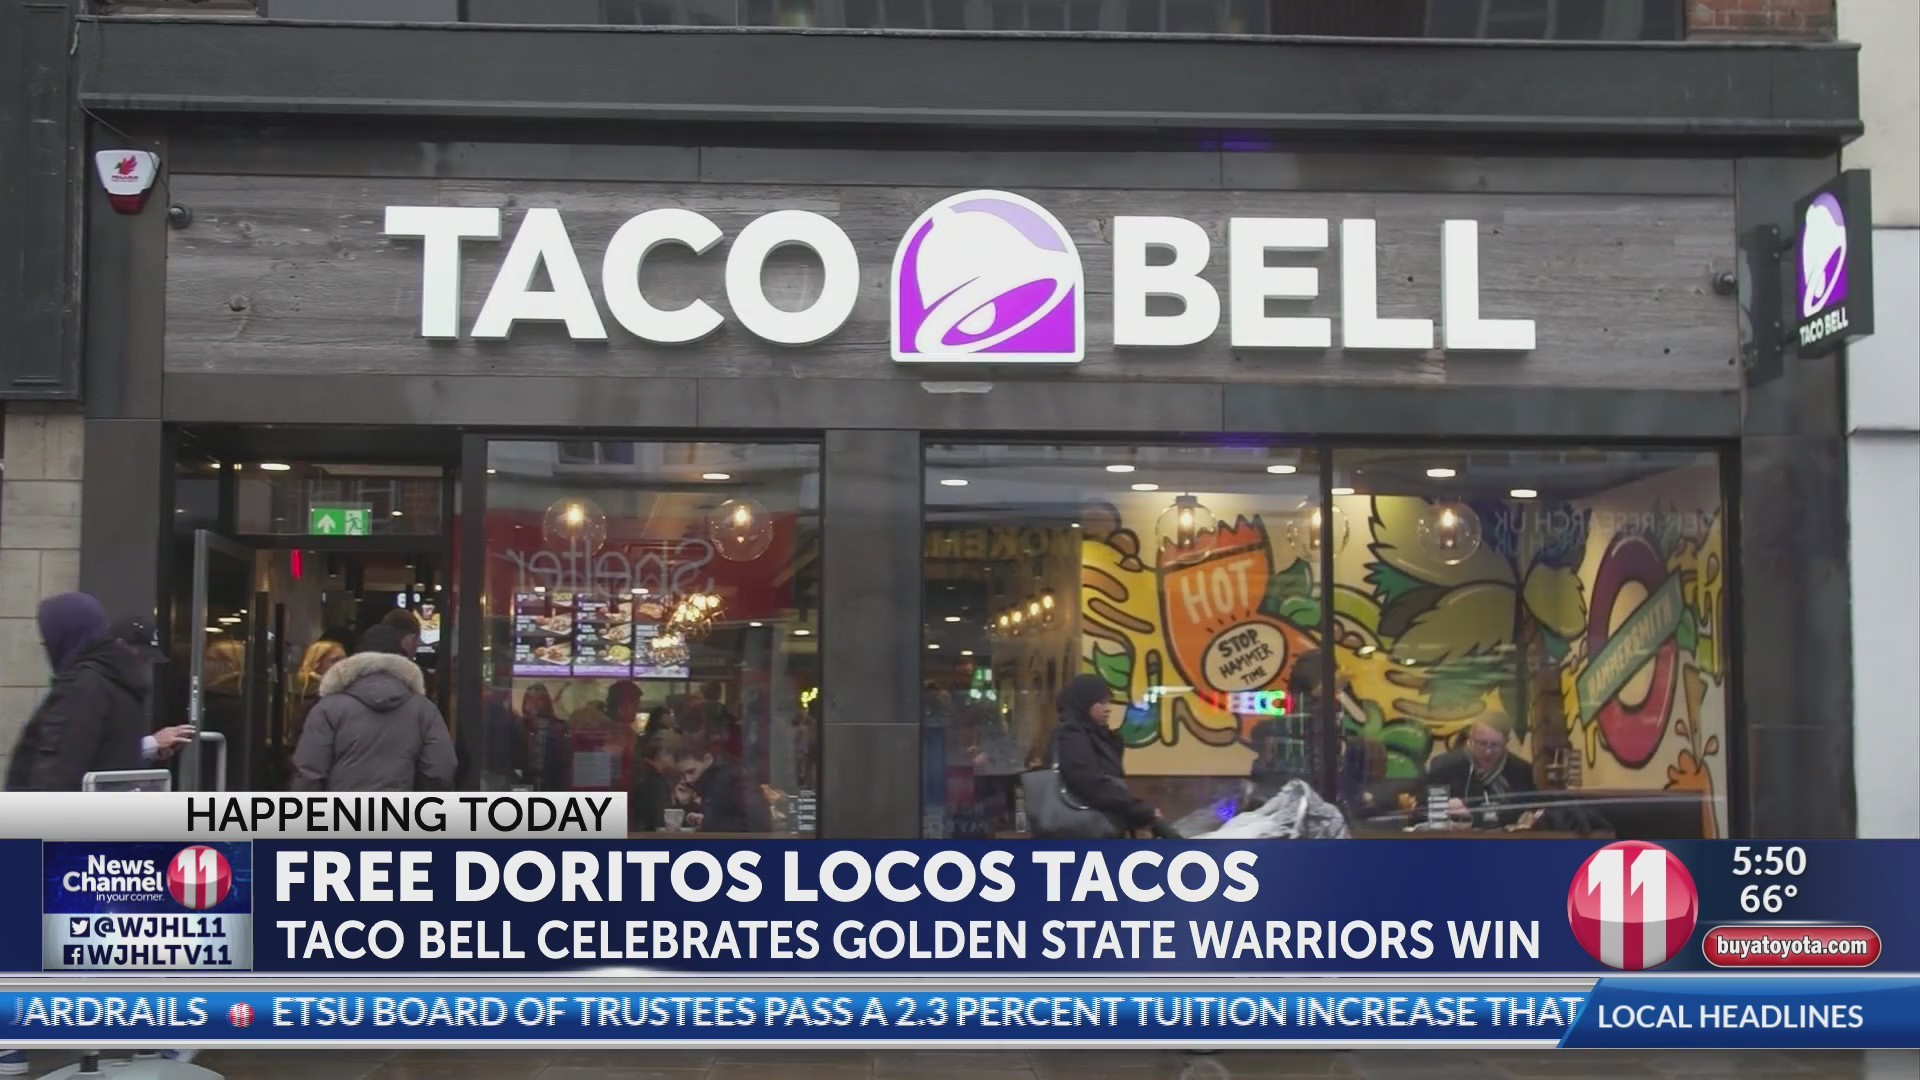 Taco Bell giving away free tacos Tuesday from 2:00 - 6:00 p.m. Tuesday